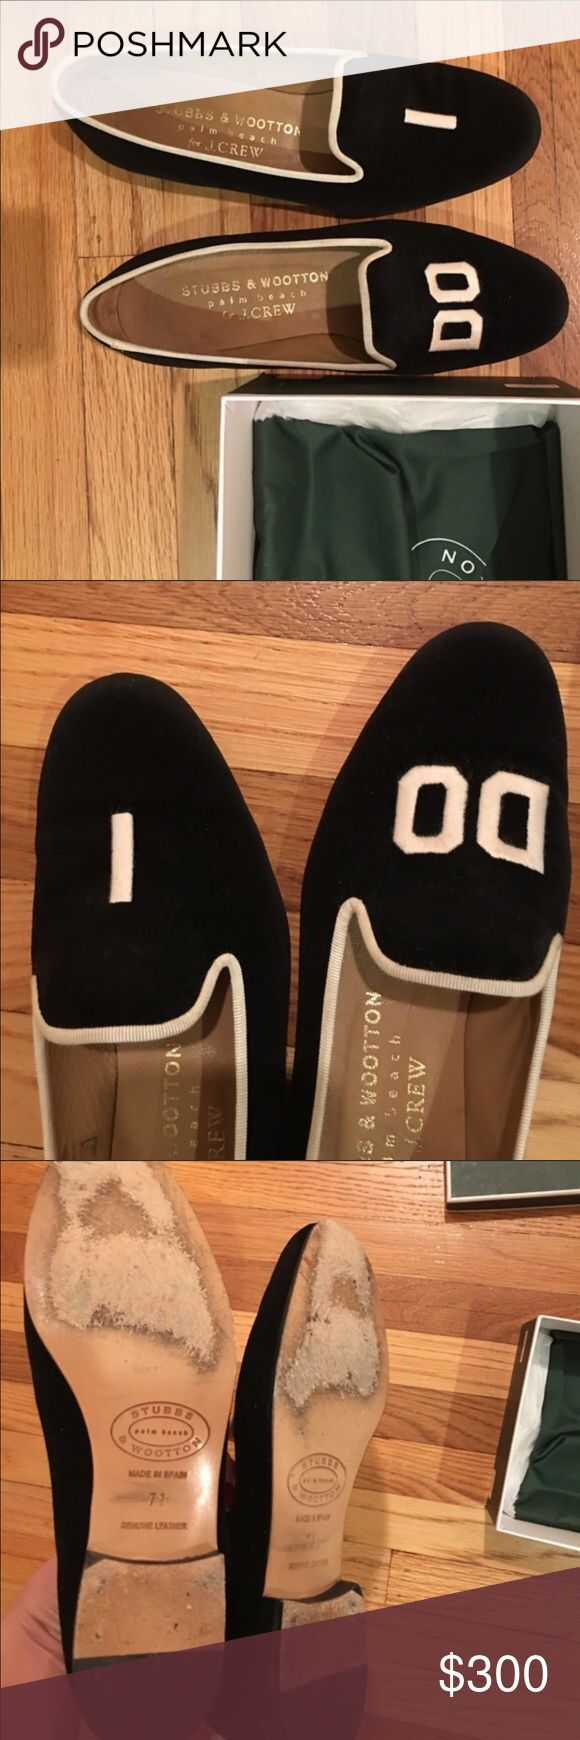 Stubbs and Wootton J Crew I DO slipper Beautiful slippers. Velvet. Black and white. Only worn once on my honeymoon in Europe. So comfortable and in great condition! Comes with dustbag. Perfect for a newlywed J. Crew Shoes Slippers